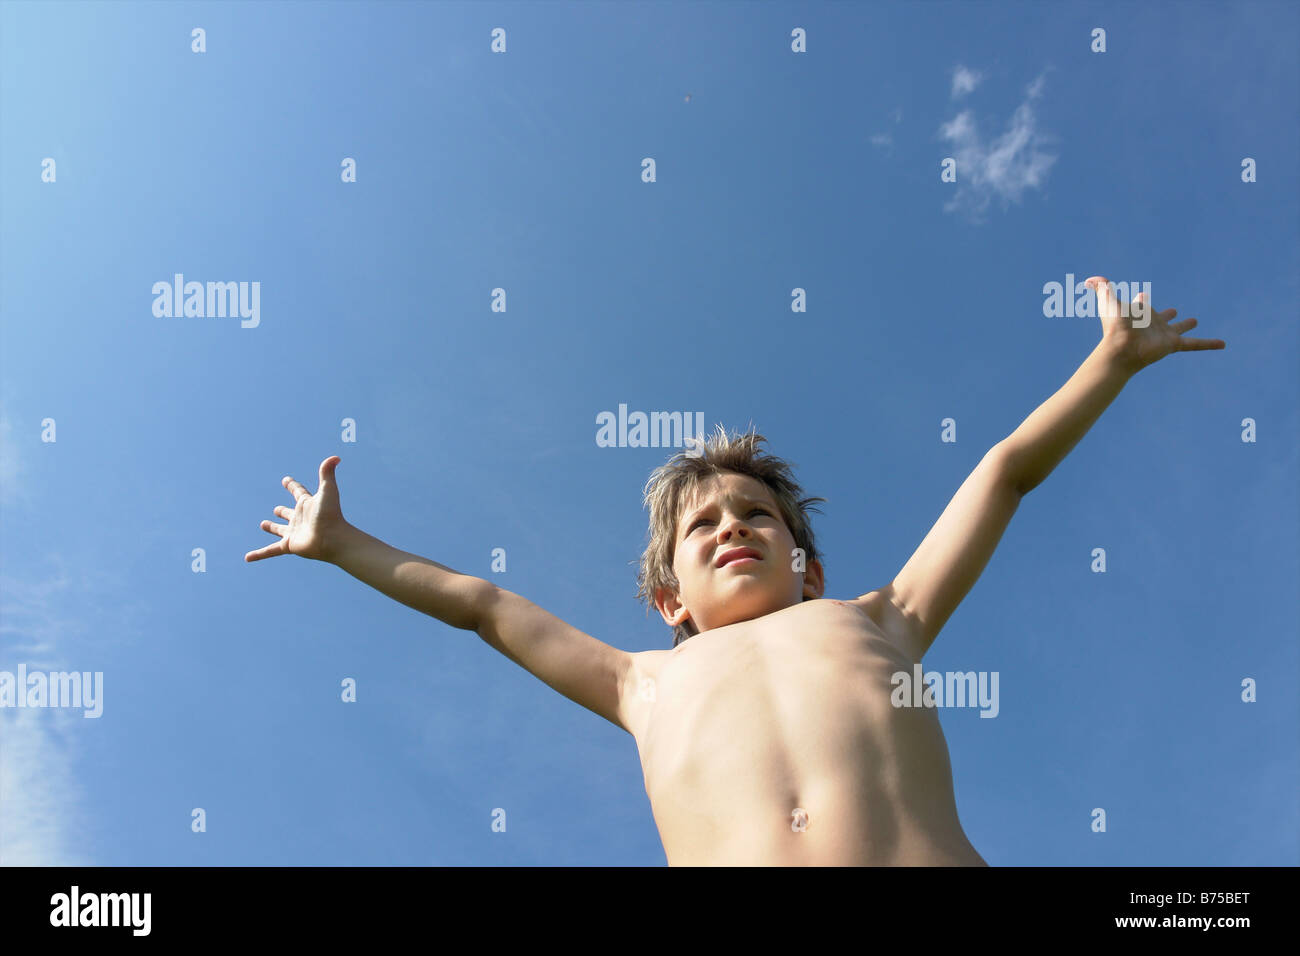 Eight year old boy with arms outstretched, Winnipeg, Canada - Stock Image